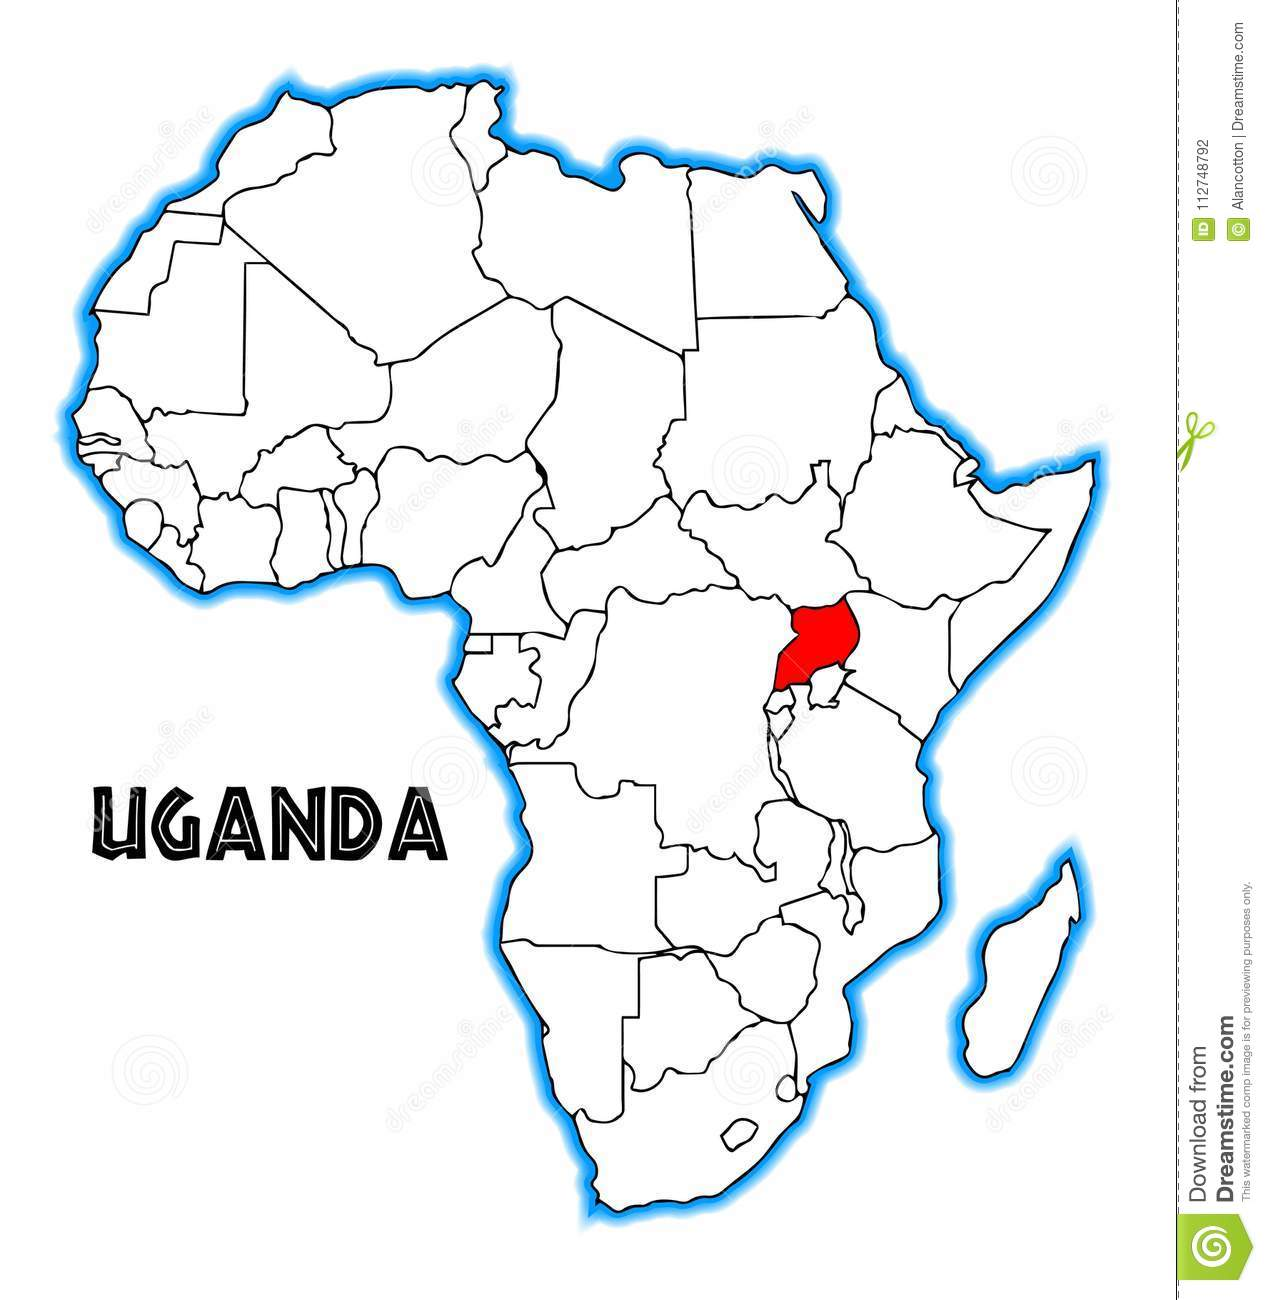 Map Of Africa Uganda Highlighted.Uganda Africa Map Stock Vector Illustration Of Black